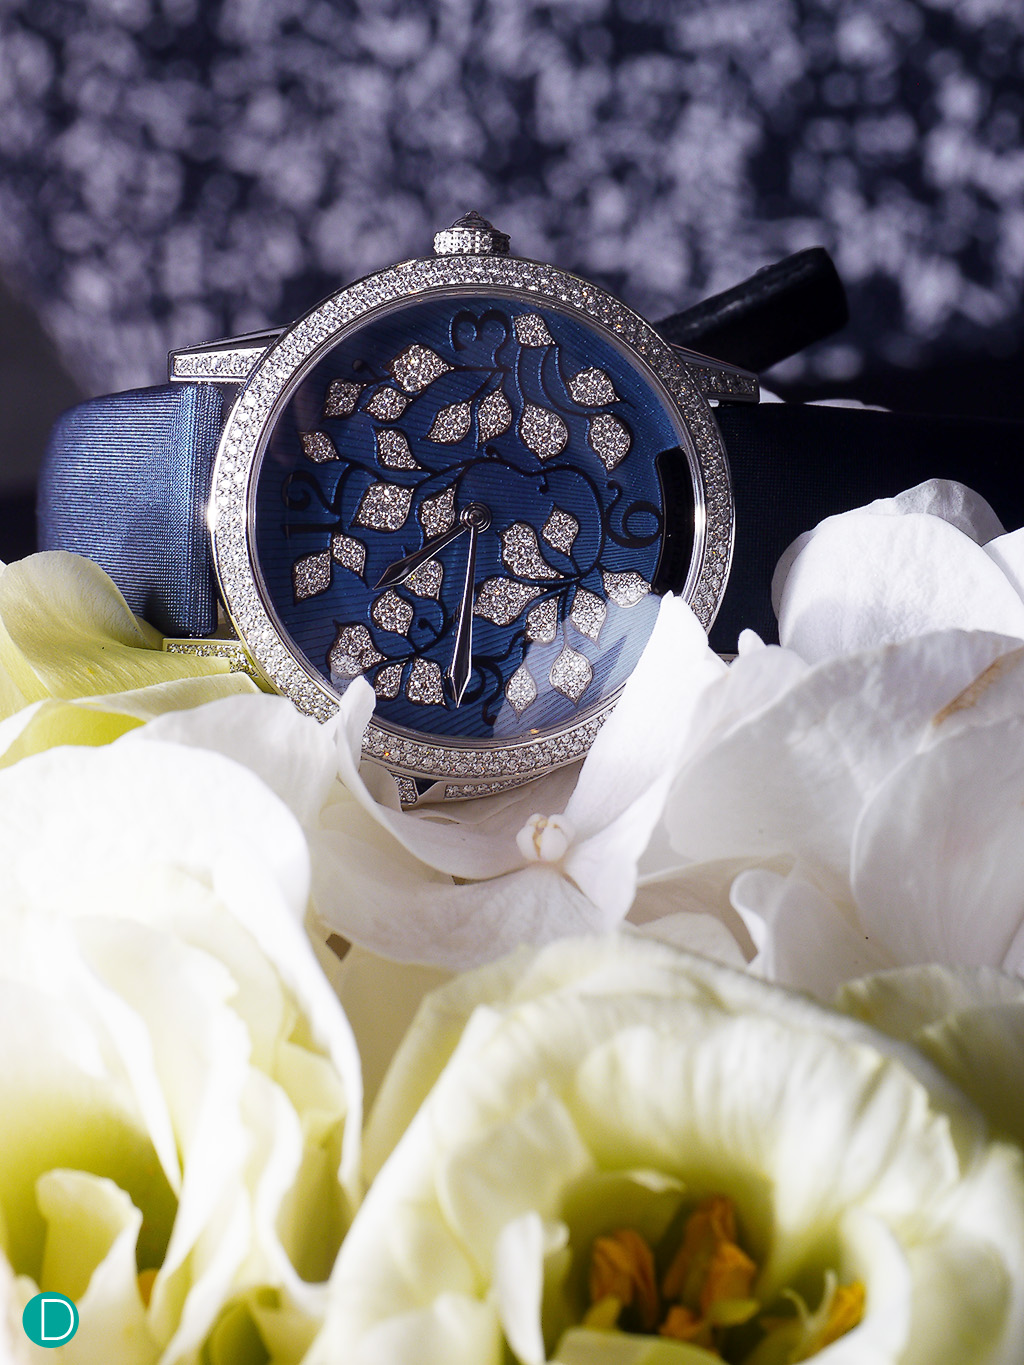 The Jaeger LeCoultre Ivy Minute Repeater, on a bed of flowers.